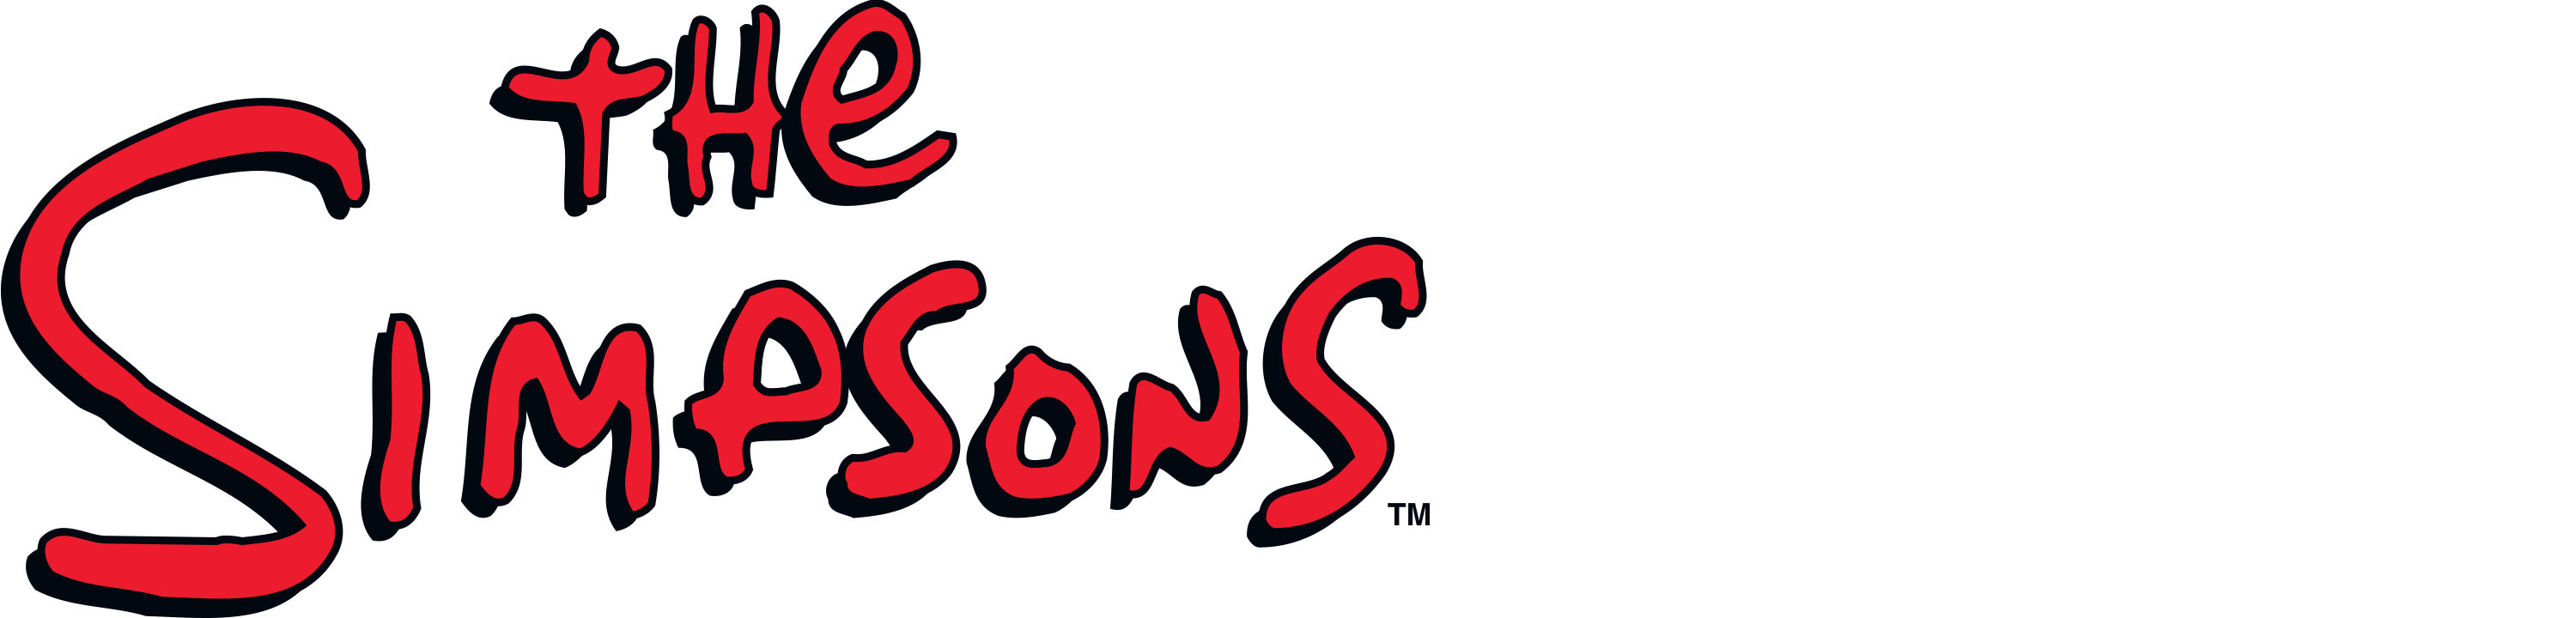 The simpsons logo png. Watch gone boy online